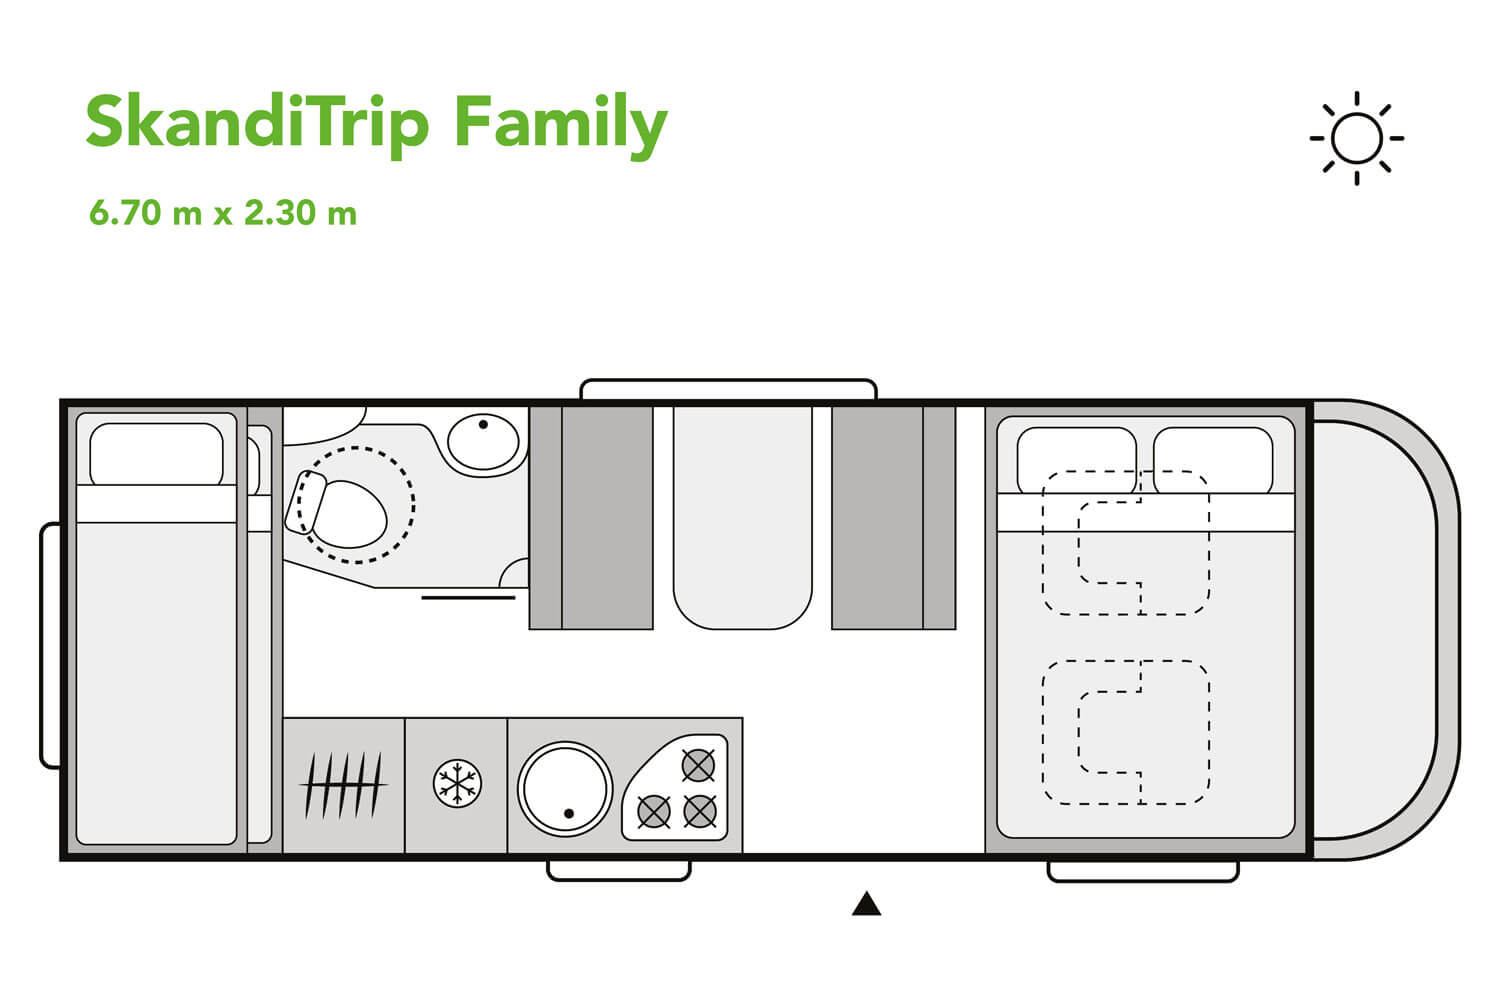 SkandiTrip family motorhome night time blueprint